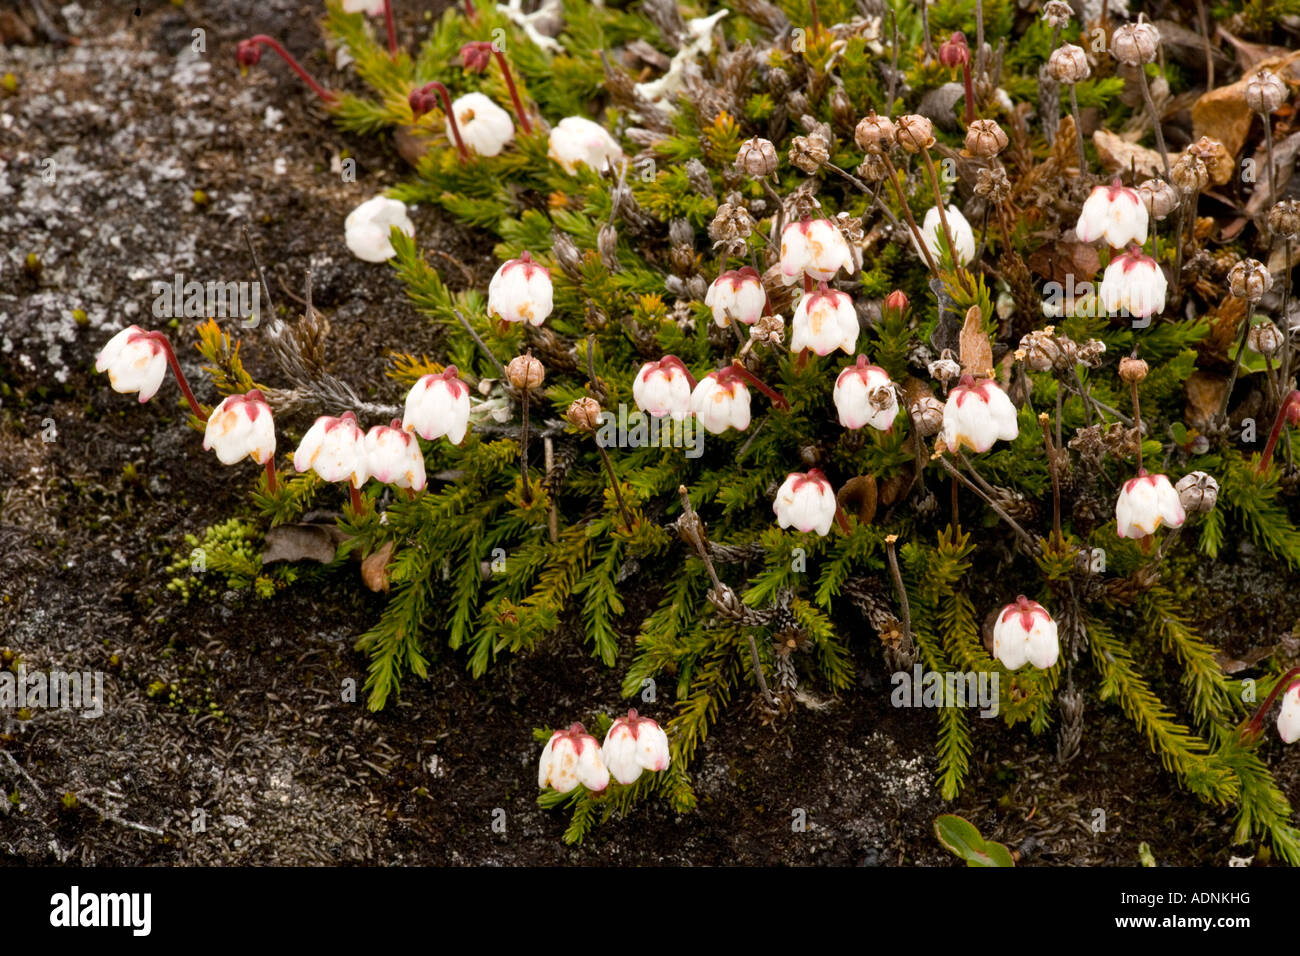 Matted Cassiope Cassiope hypnoides north Norway - Stock Image